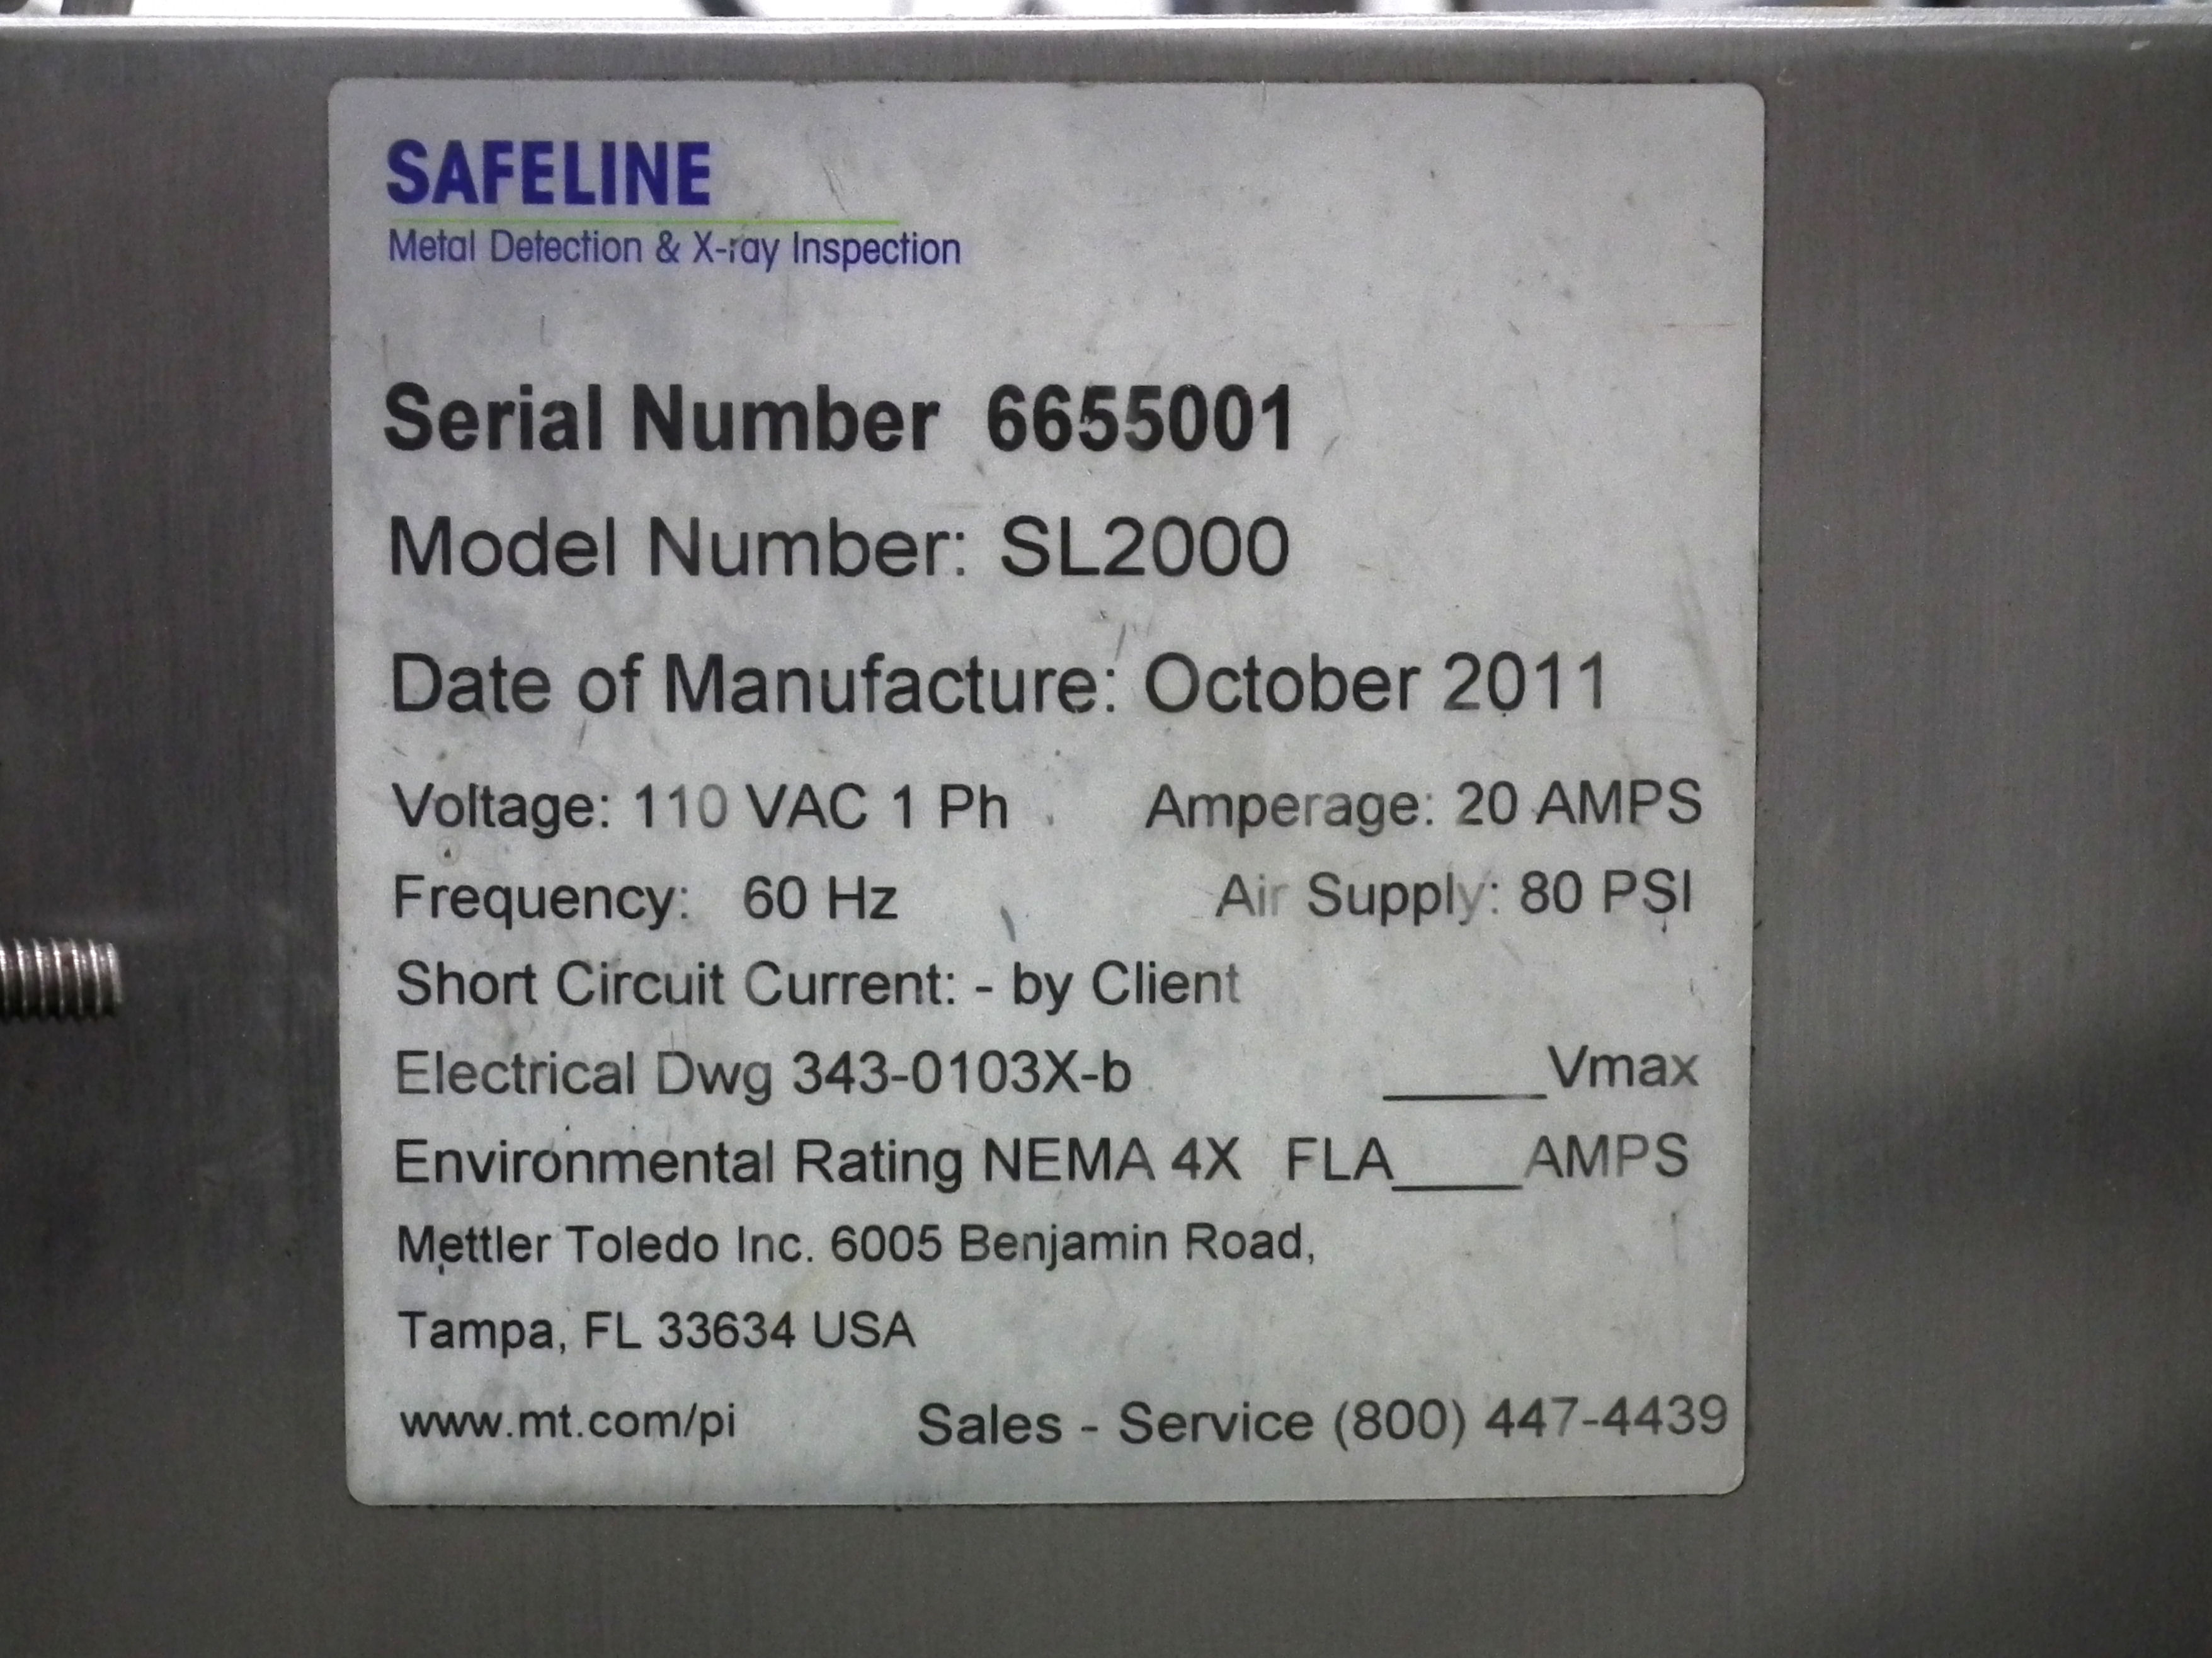 """Safeline Metal Detector Power Phase PPH 6""""W x 2""""H B3434 - Image 9 of 9"""